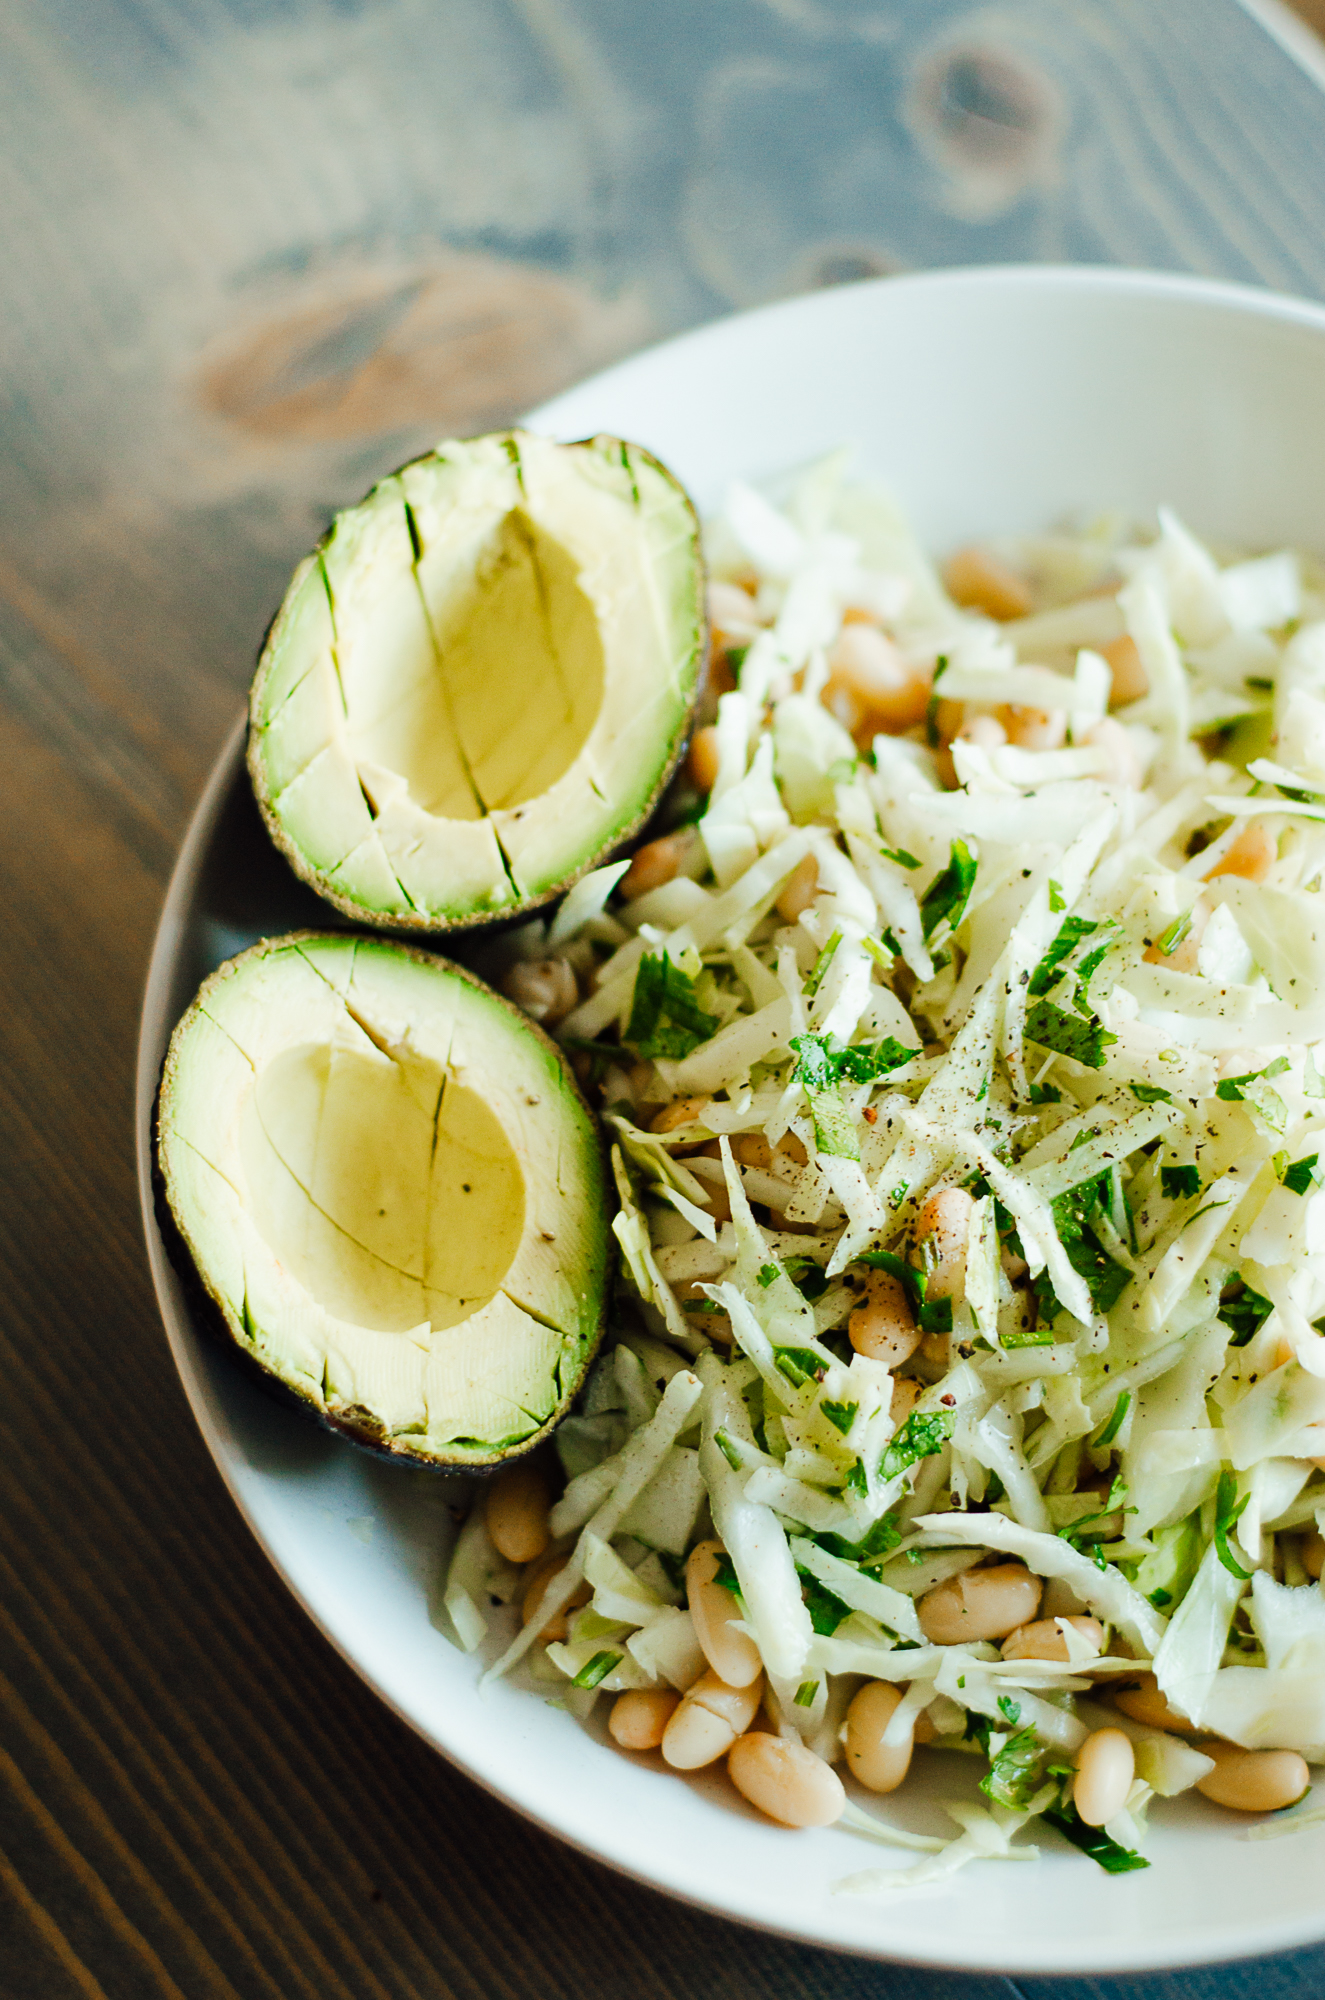 Cabbage with lime, cilantro & white bean makes the perfect salad - the nomadic wife